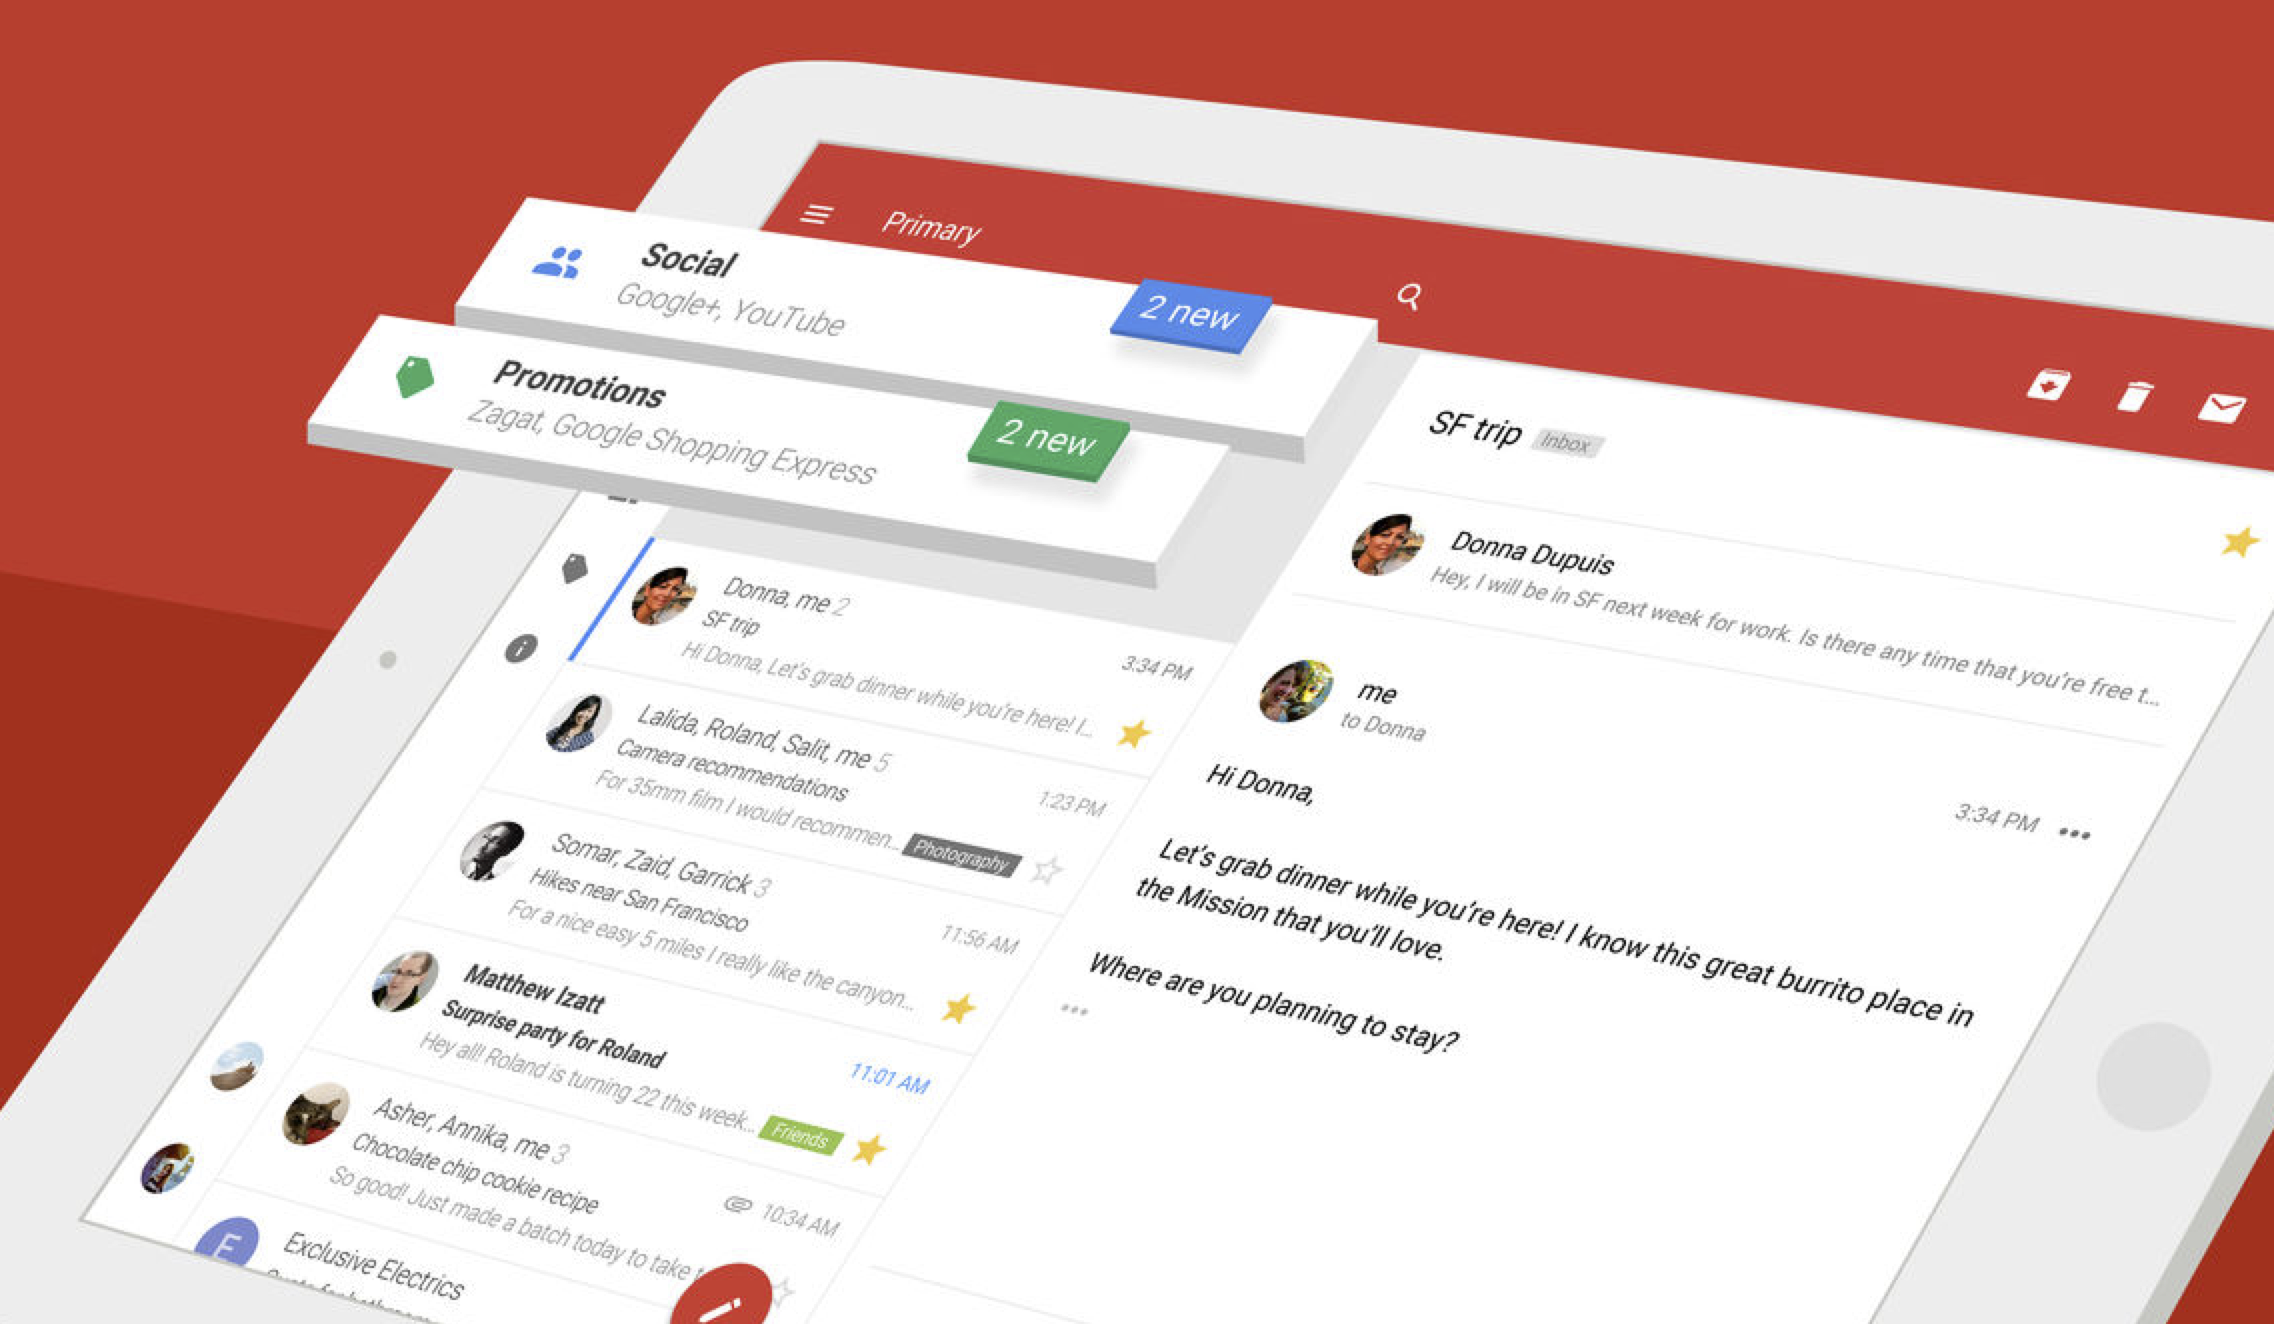 gmail-ios-app-redesign-ipad